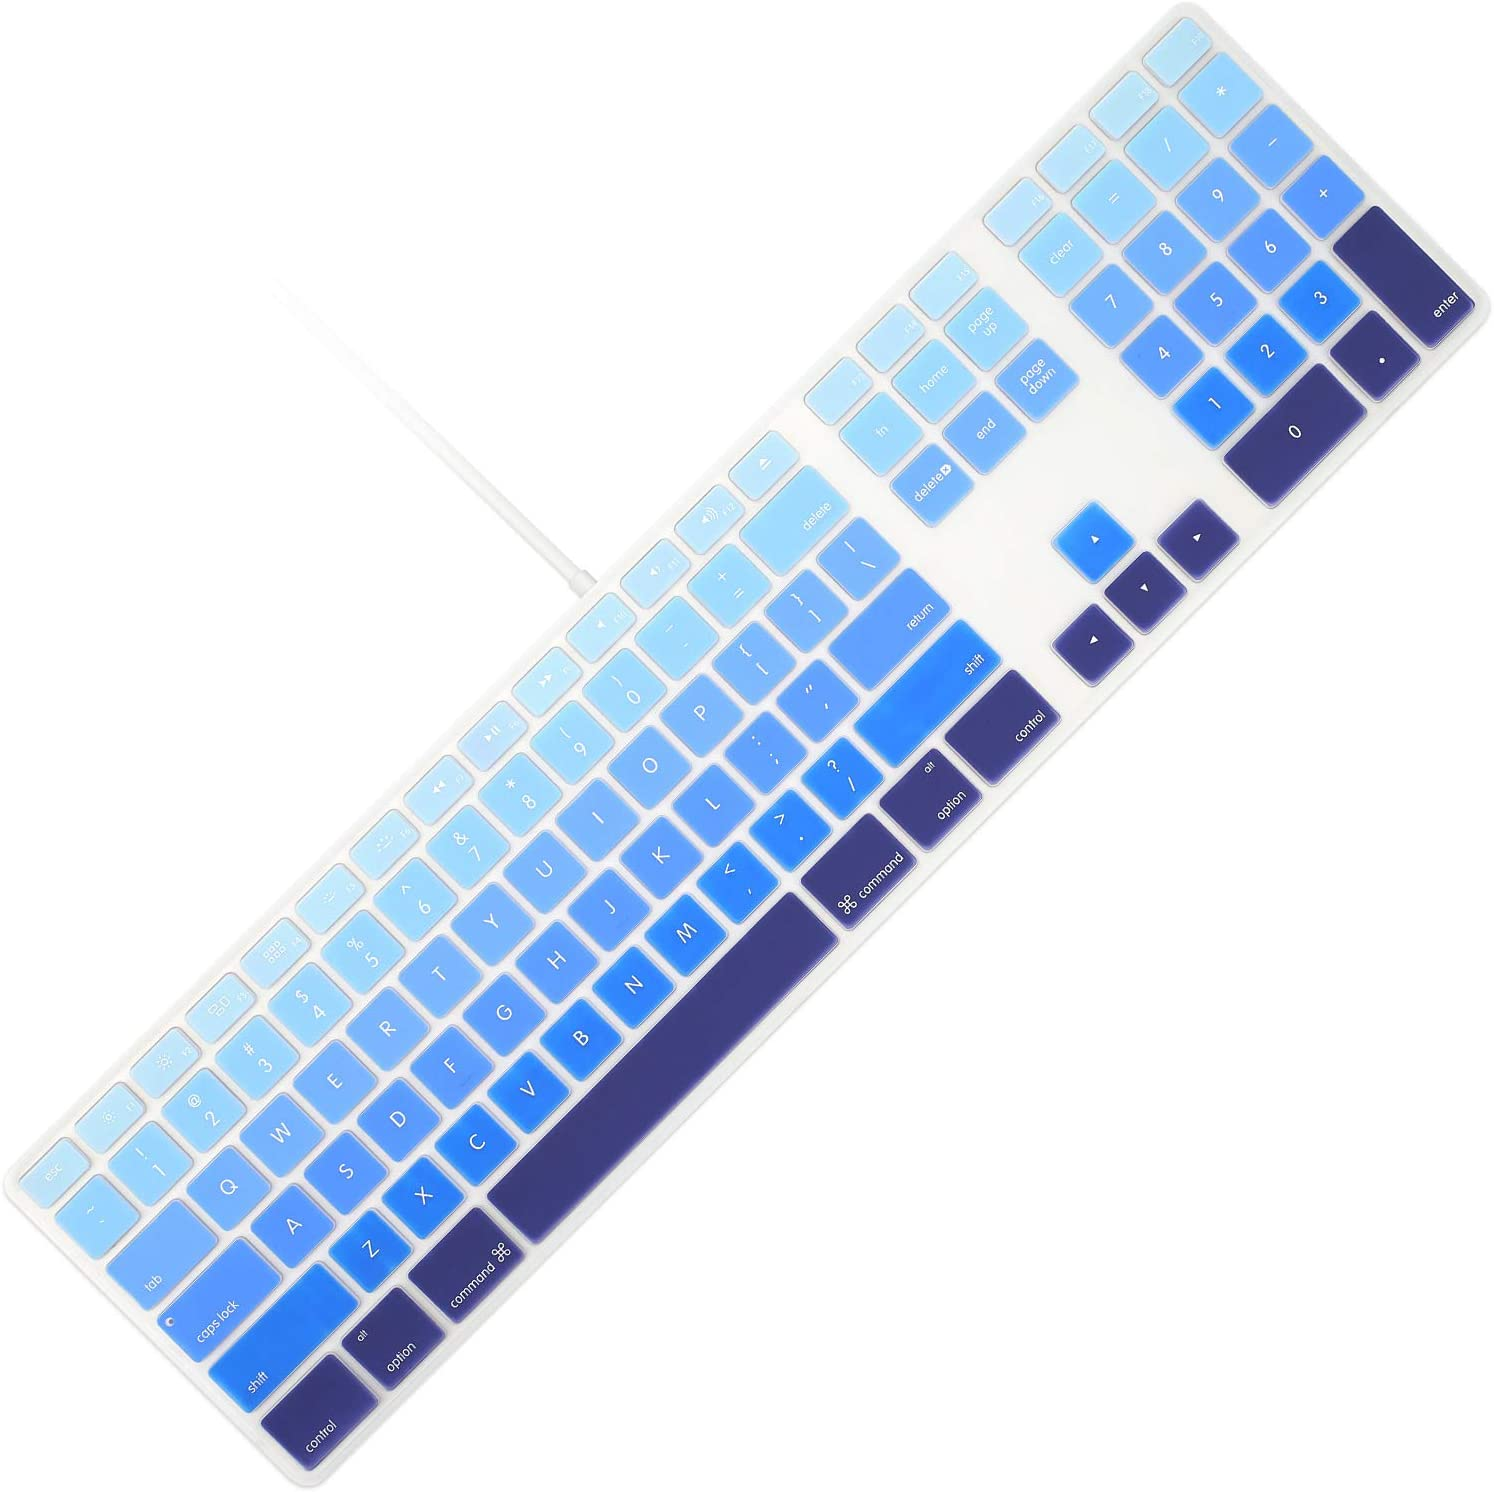 Allinside Ombre Blue Keyboard Cover for iMac Wired USB Keyboard